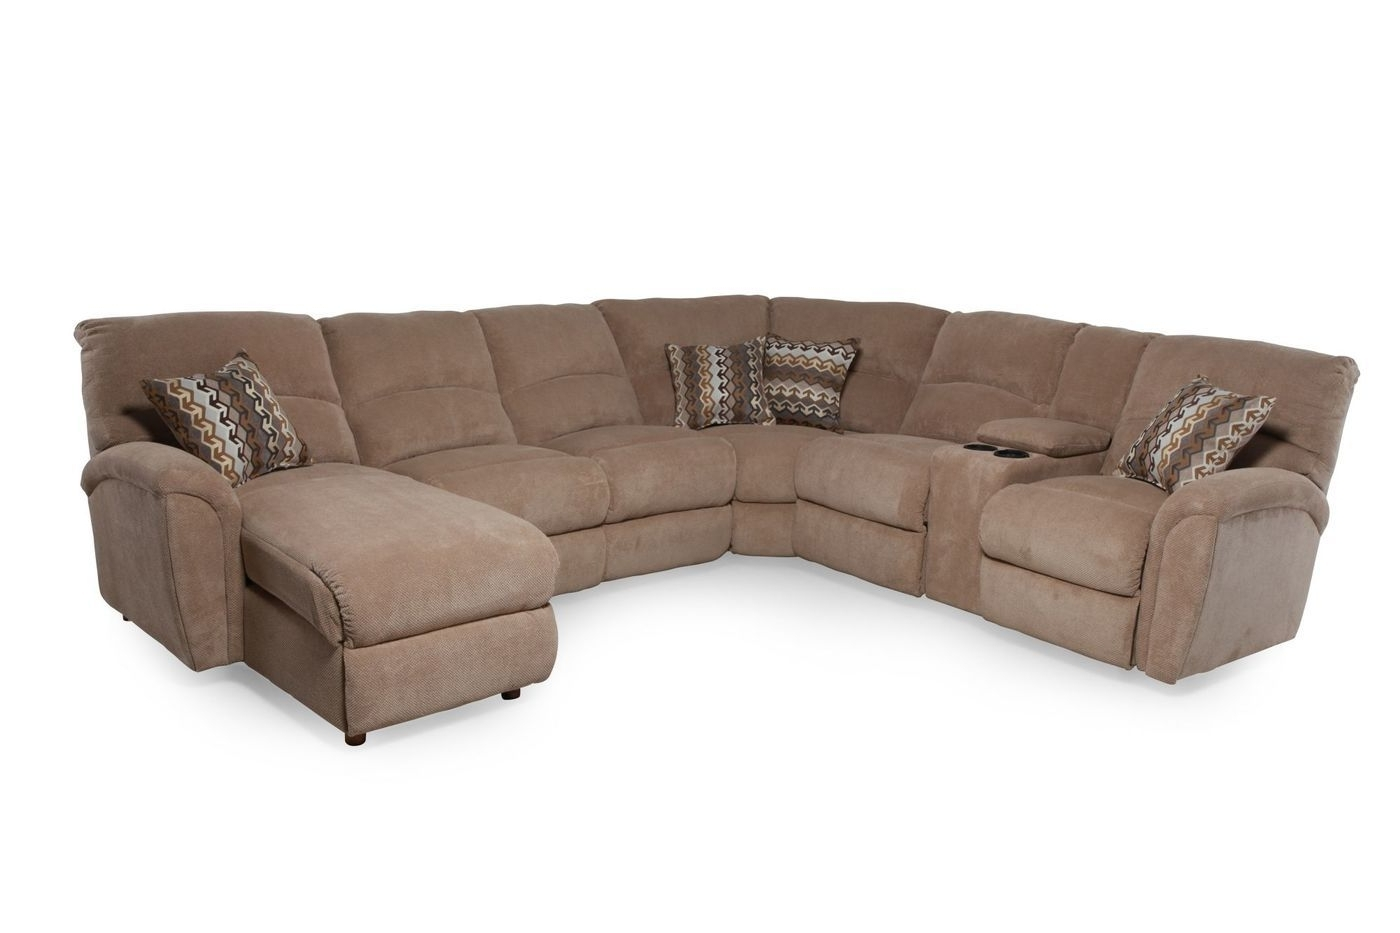 Nice Sectional Sofas Okc , Elegant Sectional Sofas Okc 60 On Sofa Throughout 2019 Okc Sectional Sofas (Gallery 8 of 20)